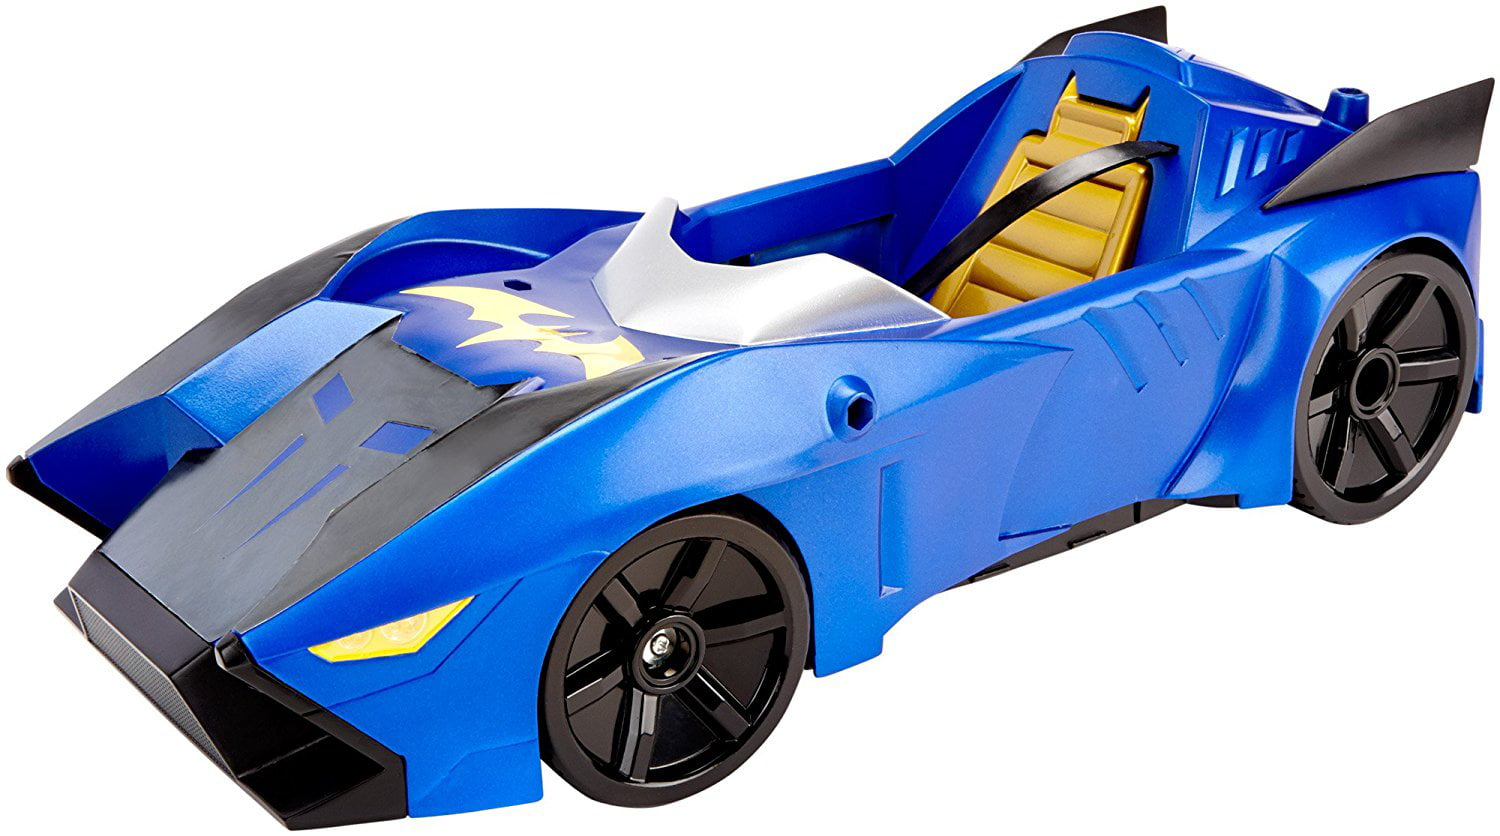 Batman Unlimited Batmobile Vehicle, 88 Superman Tumbler Epic Flight 2In1 Capture Dawn... by